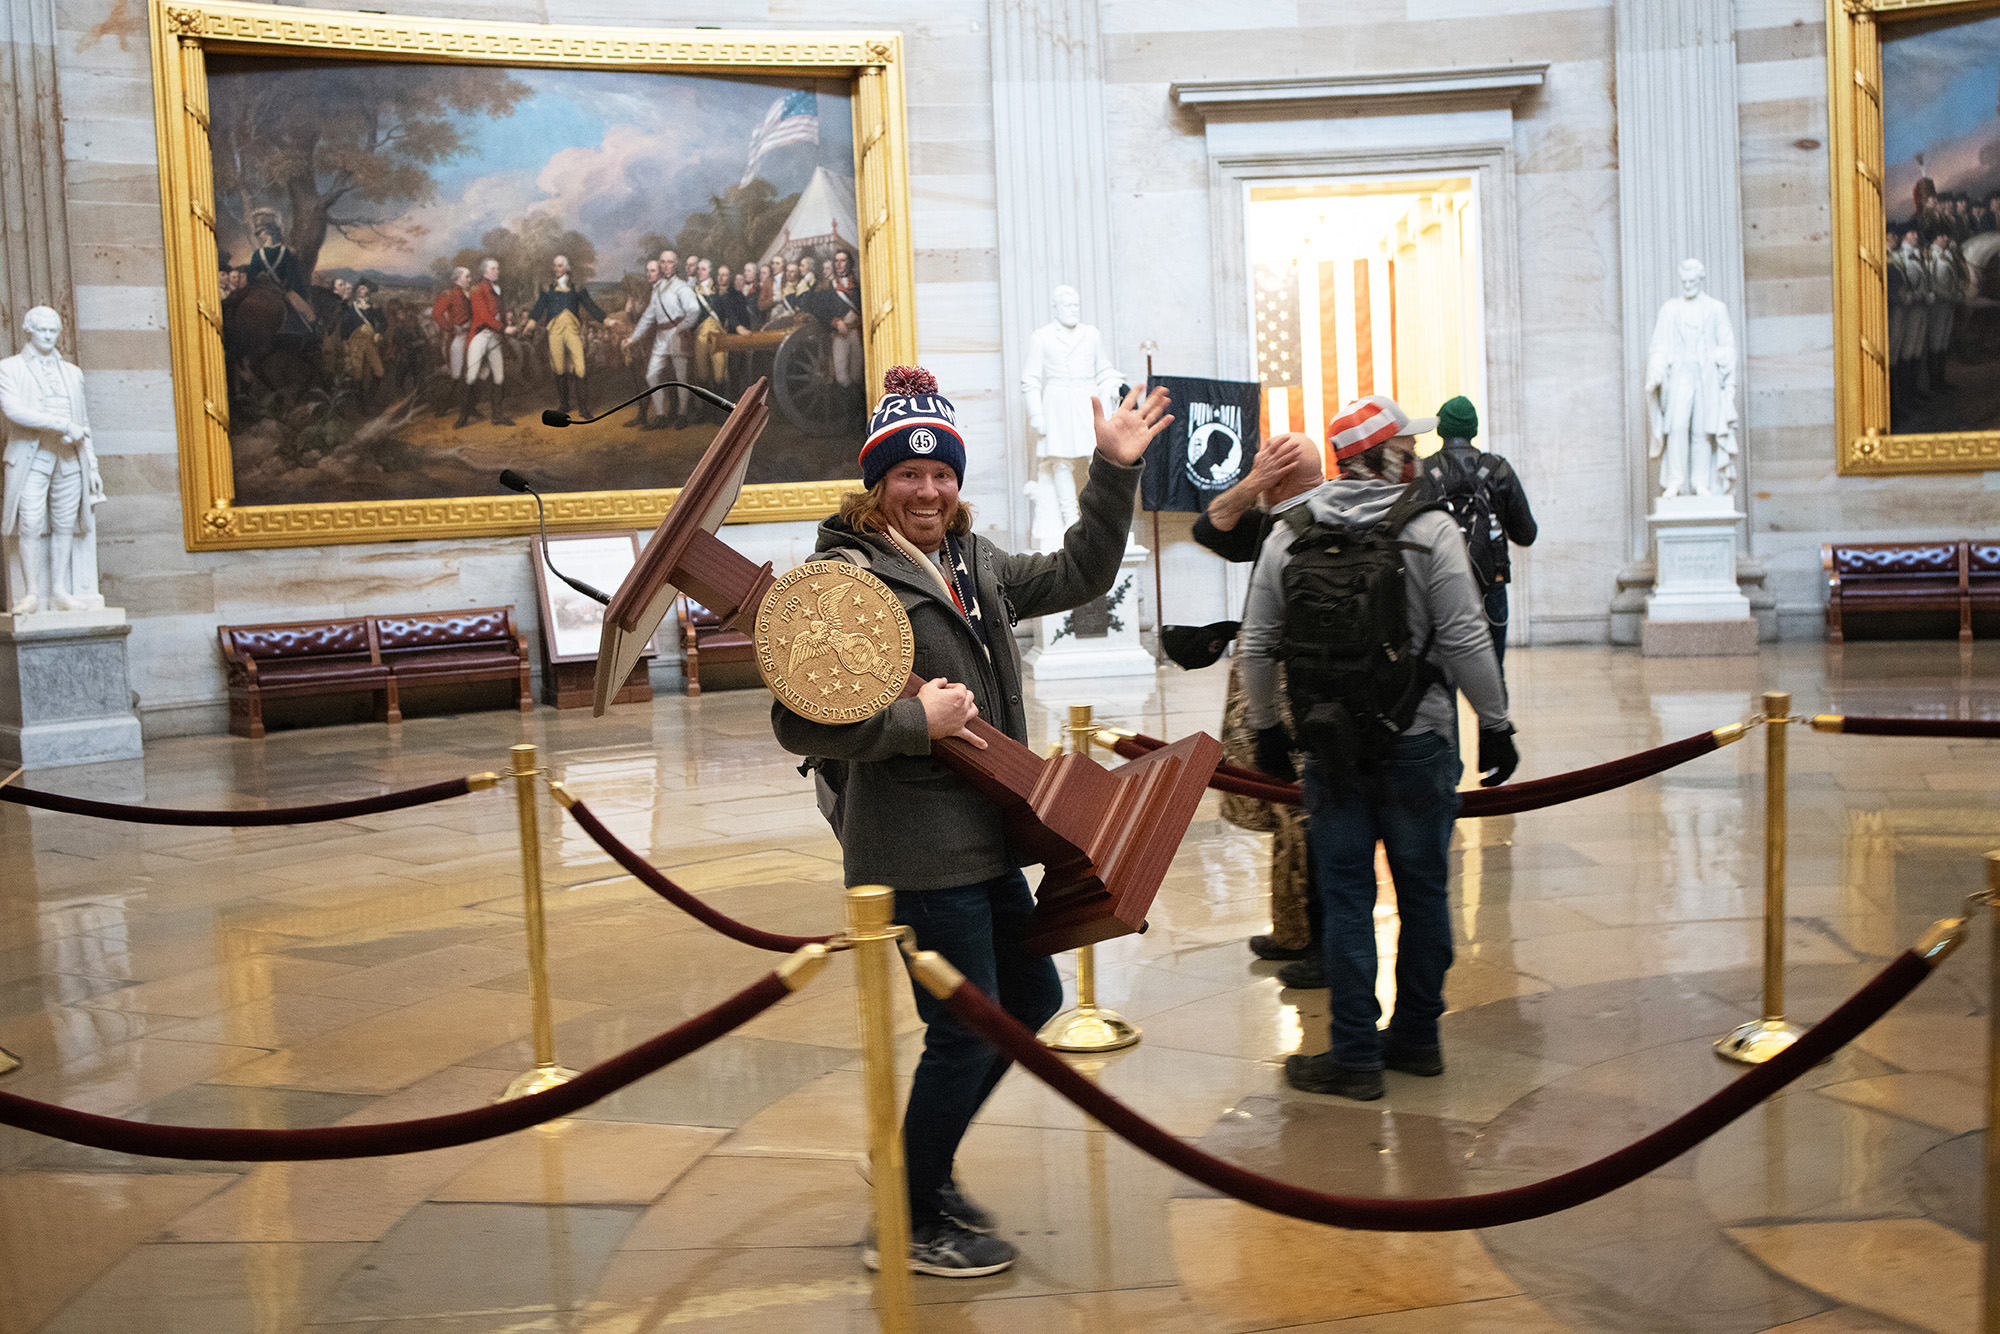 A pro-Trump protester carries the lectern of U.S. Speaker of the House Nancy Pelosi through the Roturnda of the U.S. Capitol Building after a pro-Trump mob stormed the building on January 06, 2021 in Washington, DC. Congress held a joint session today to ratify President-elect Joe Biden's 306-232 Electoral College win over President Donald Trump. A group of Republican senators said they would reject the Electoral College votes of several states unless Congress appointed a commission to audit the election results. (Photo by Win McNamee/Getty Images)